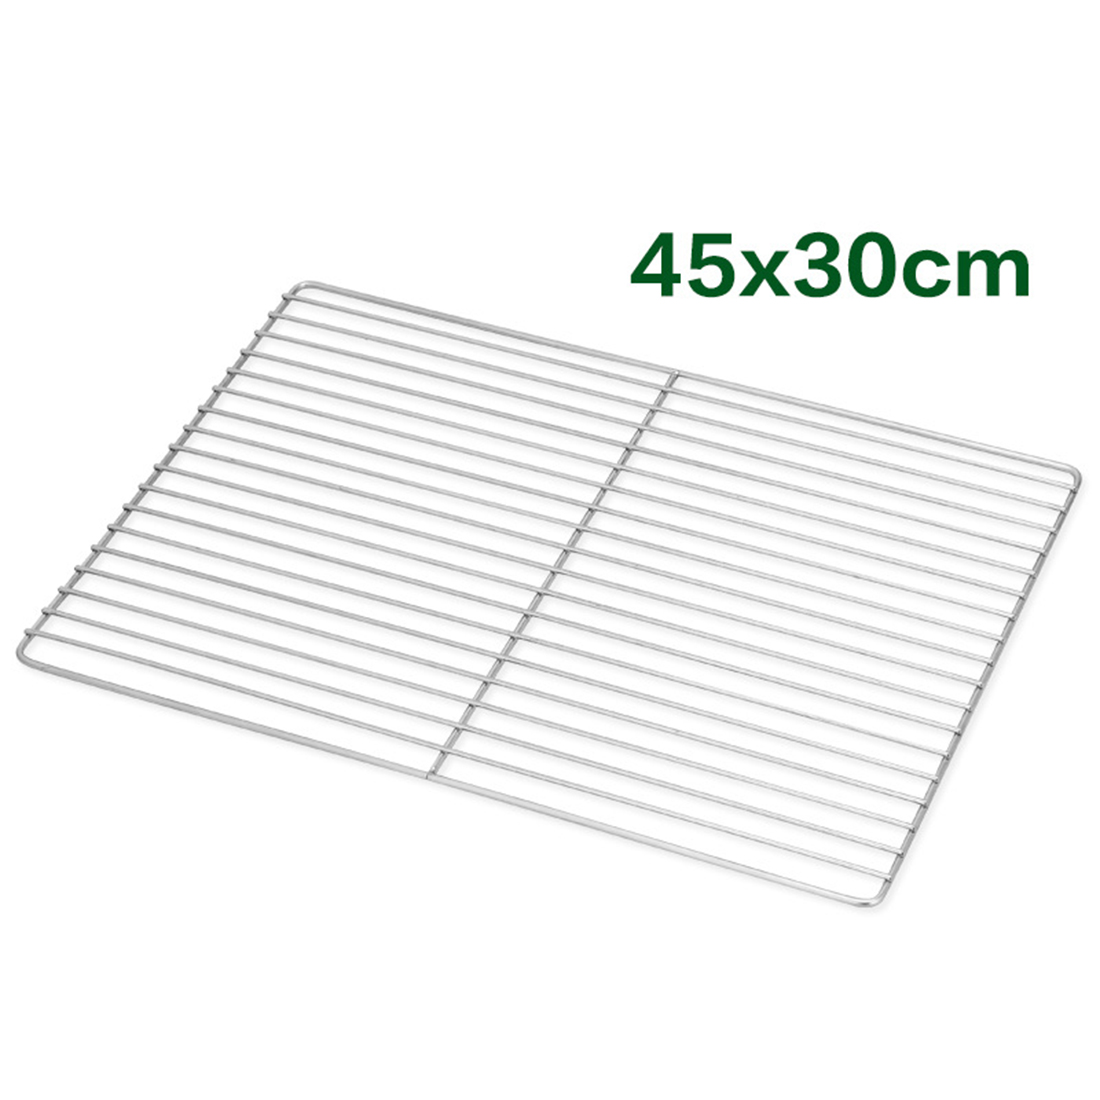 1pcs Outdoor Cooking BBQ Barbecue Tools Nonstick Stainless Steel Rectangle Shape Holes Grilling Wire Mesh For The Grill - Silver